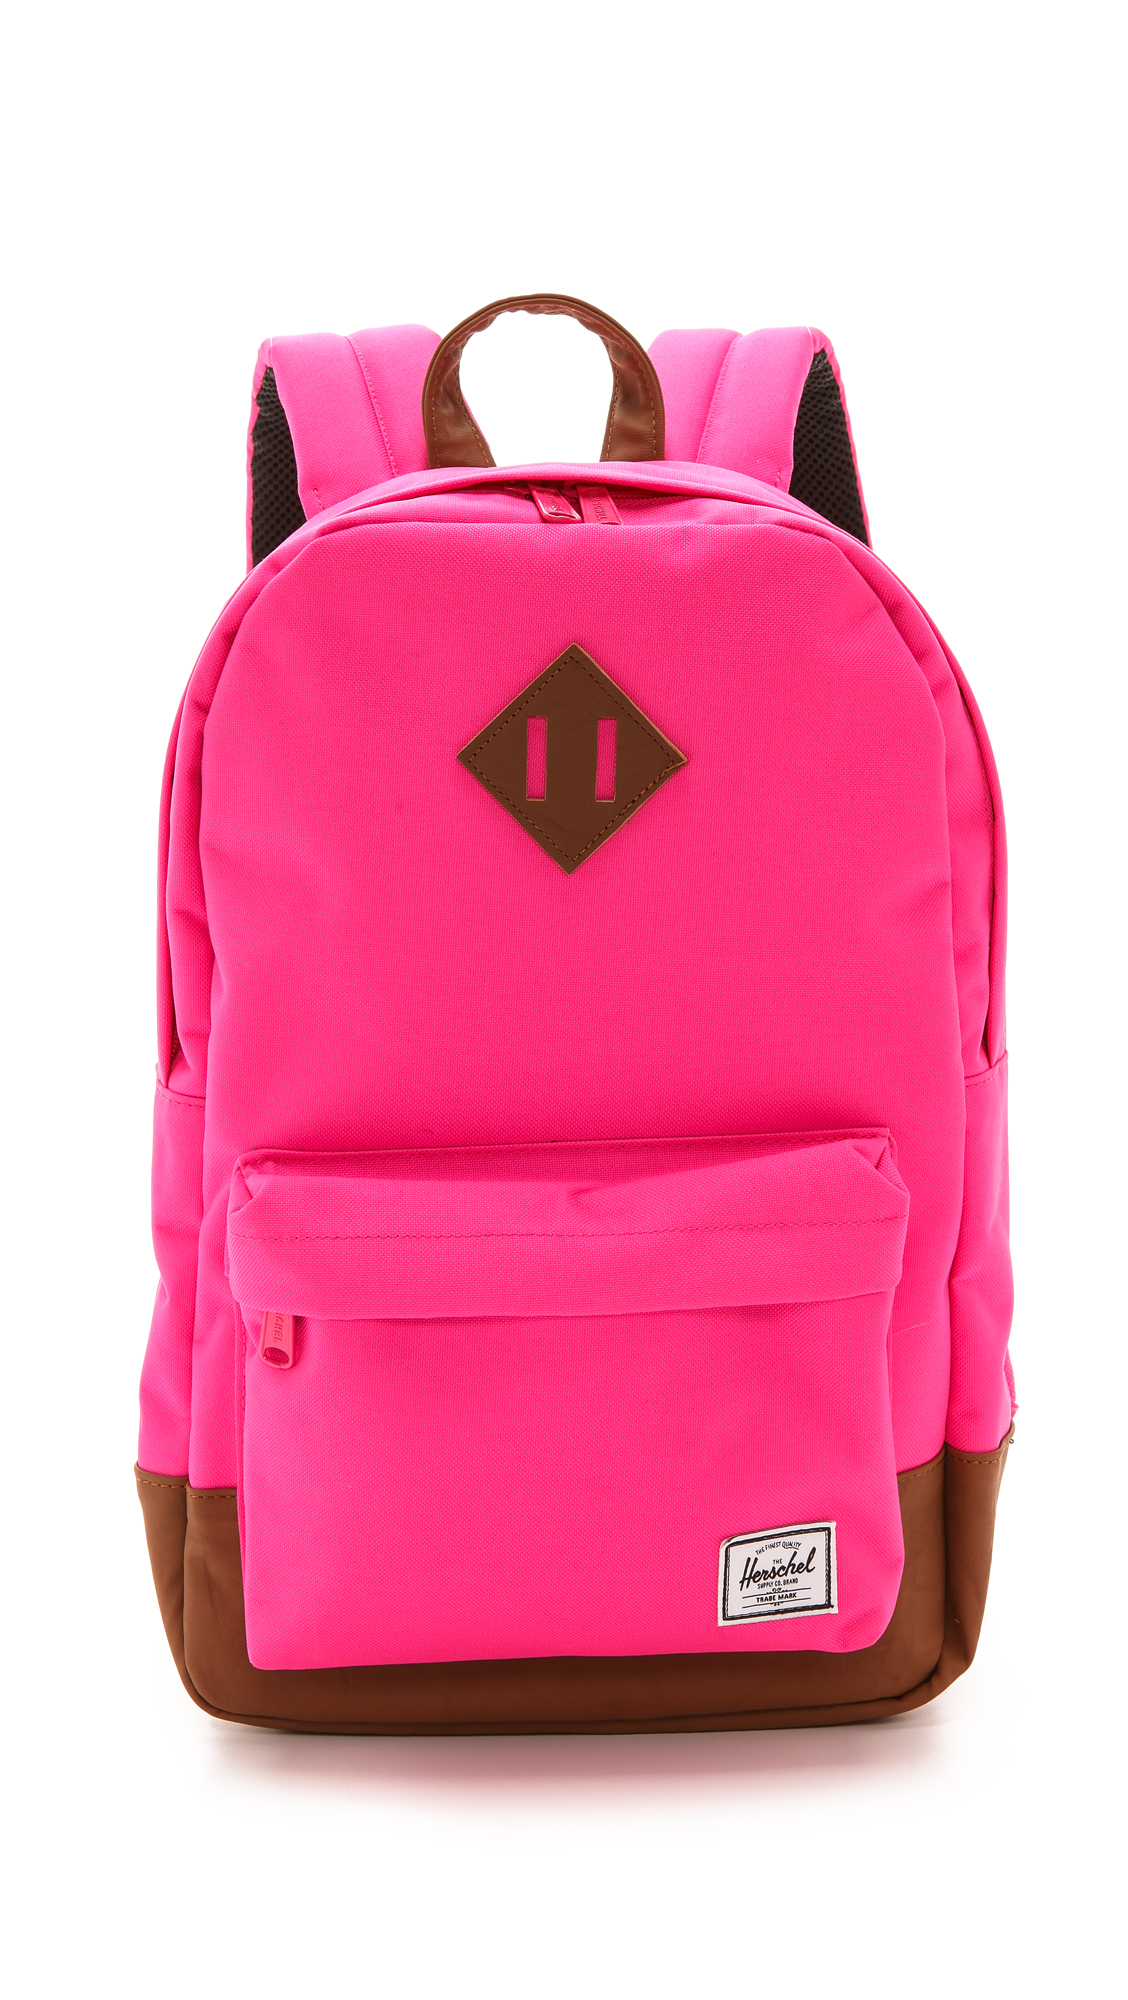 1e134292b89e Herschel Supply Co. Heritage Mid Backpack Neon Pink in Pink - Lyst